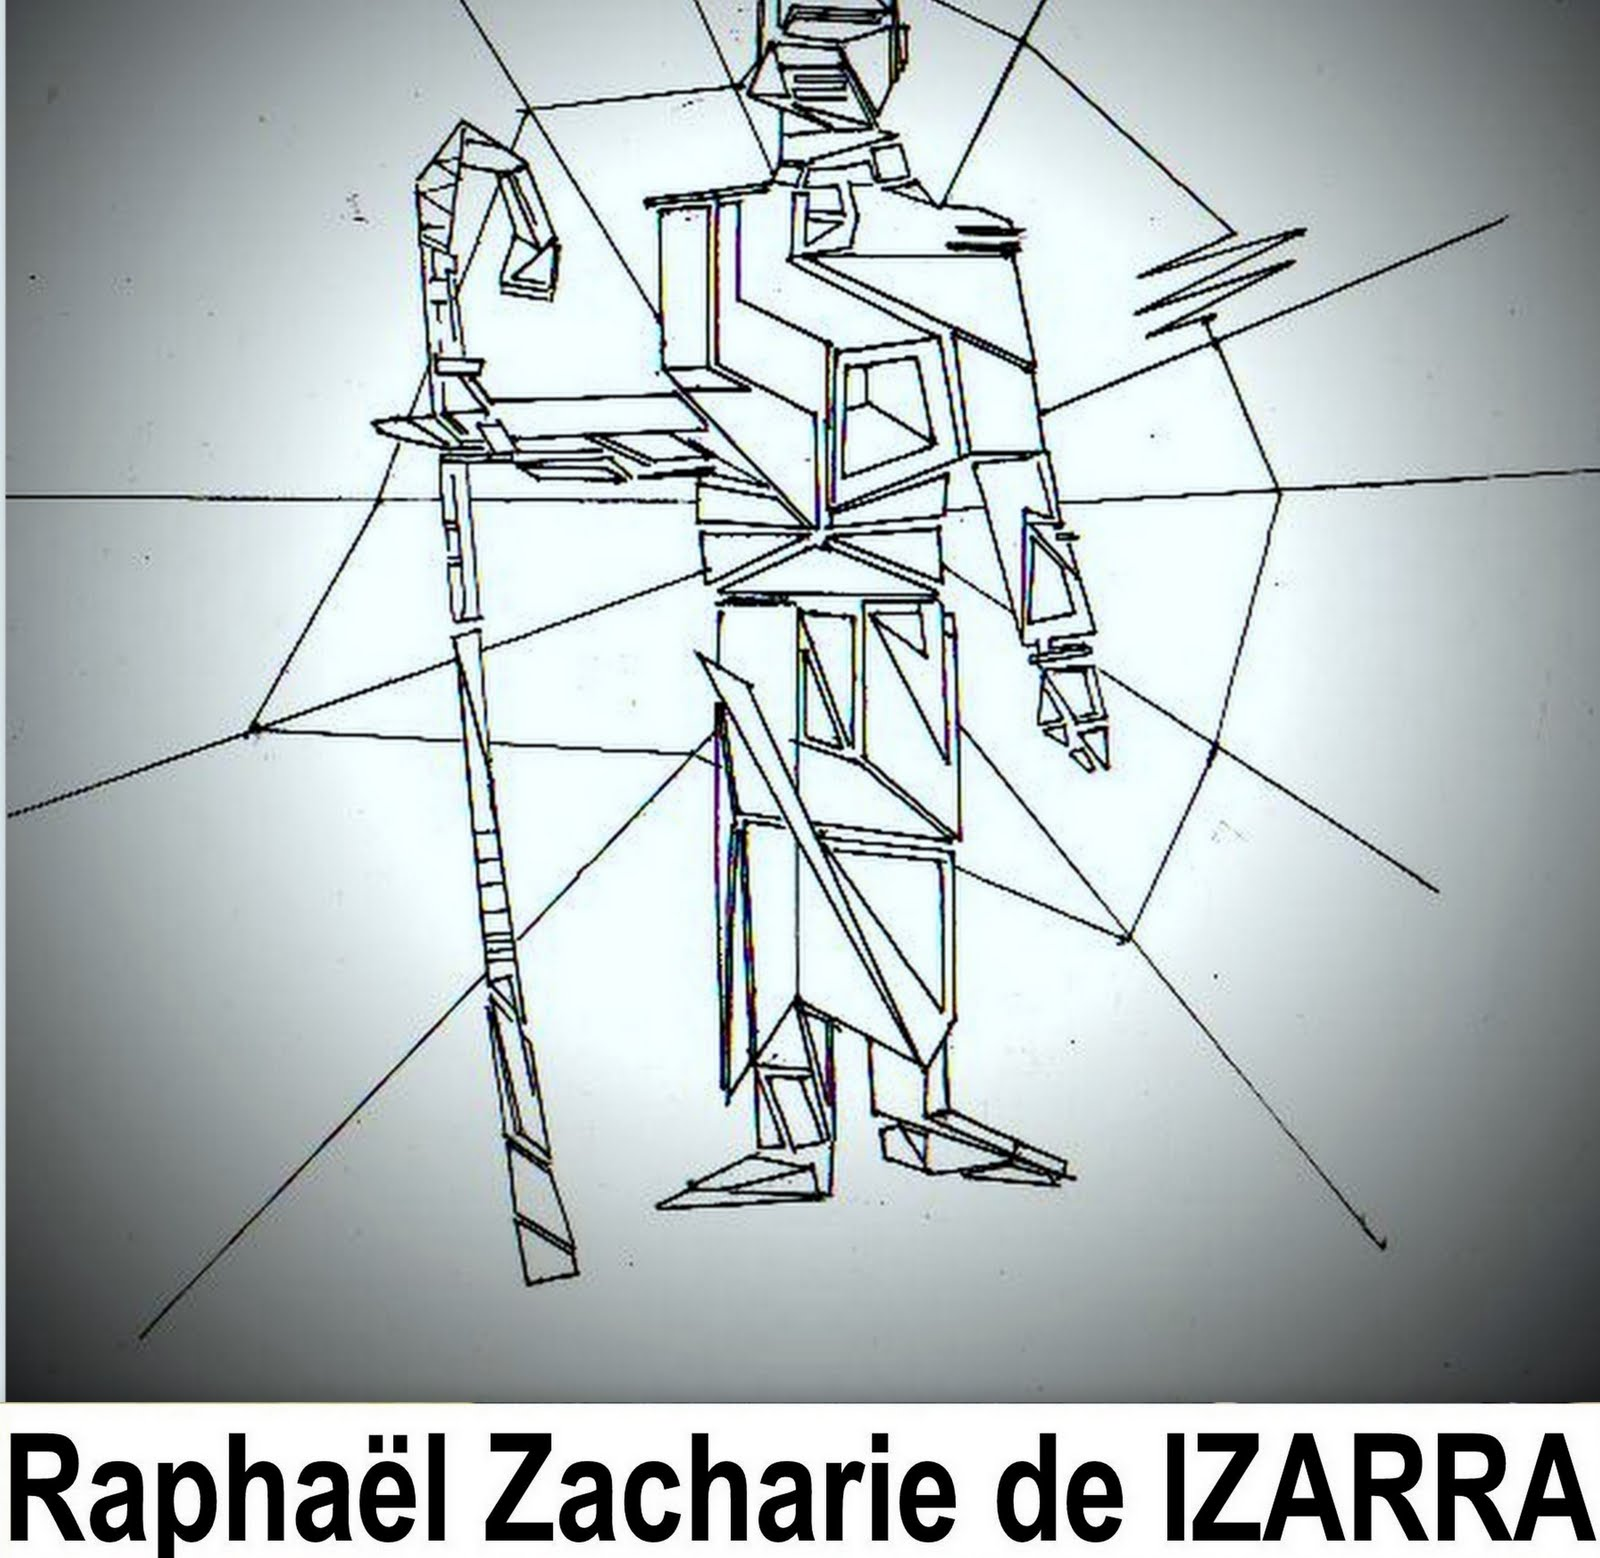 Bruni - obama - blogs principaux de raphaël zacharie de izarra